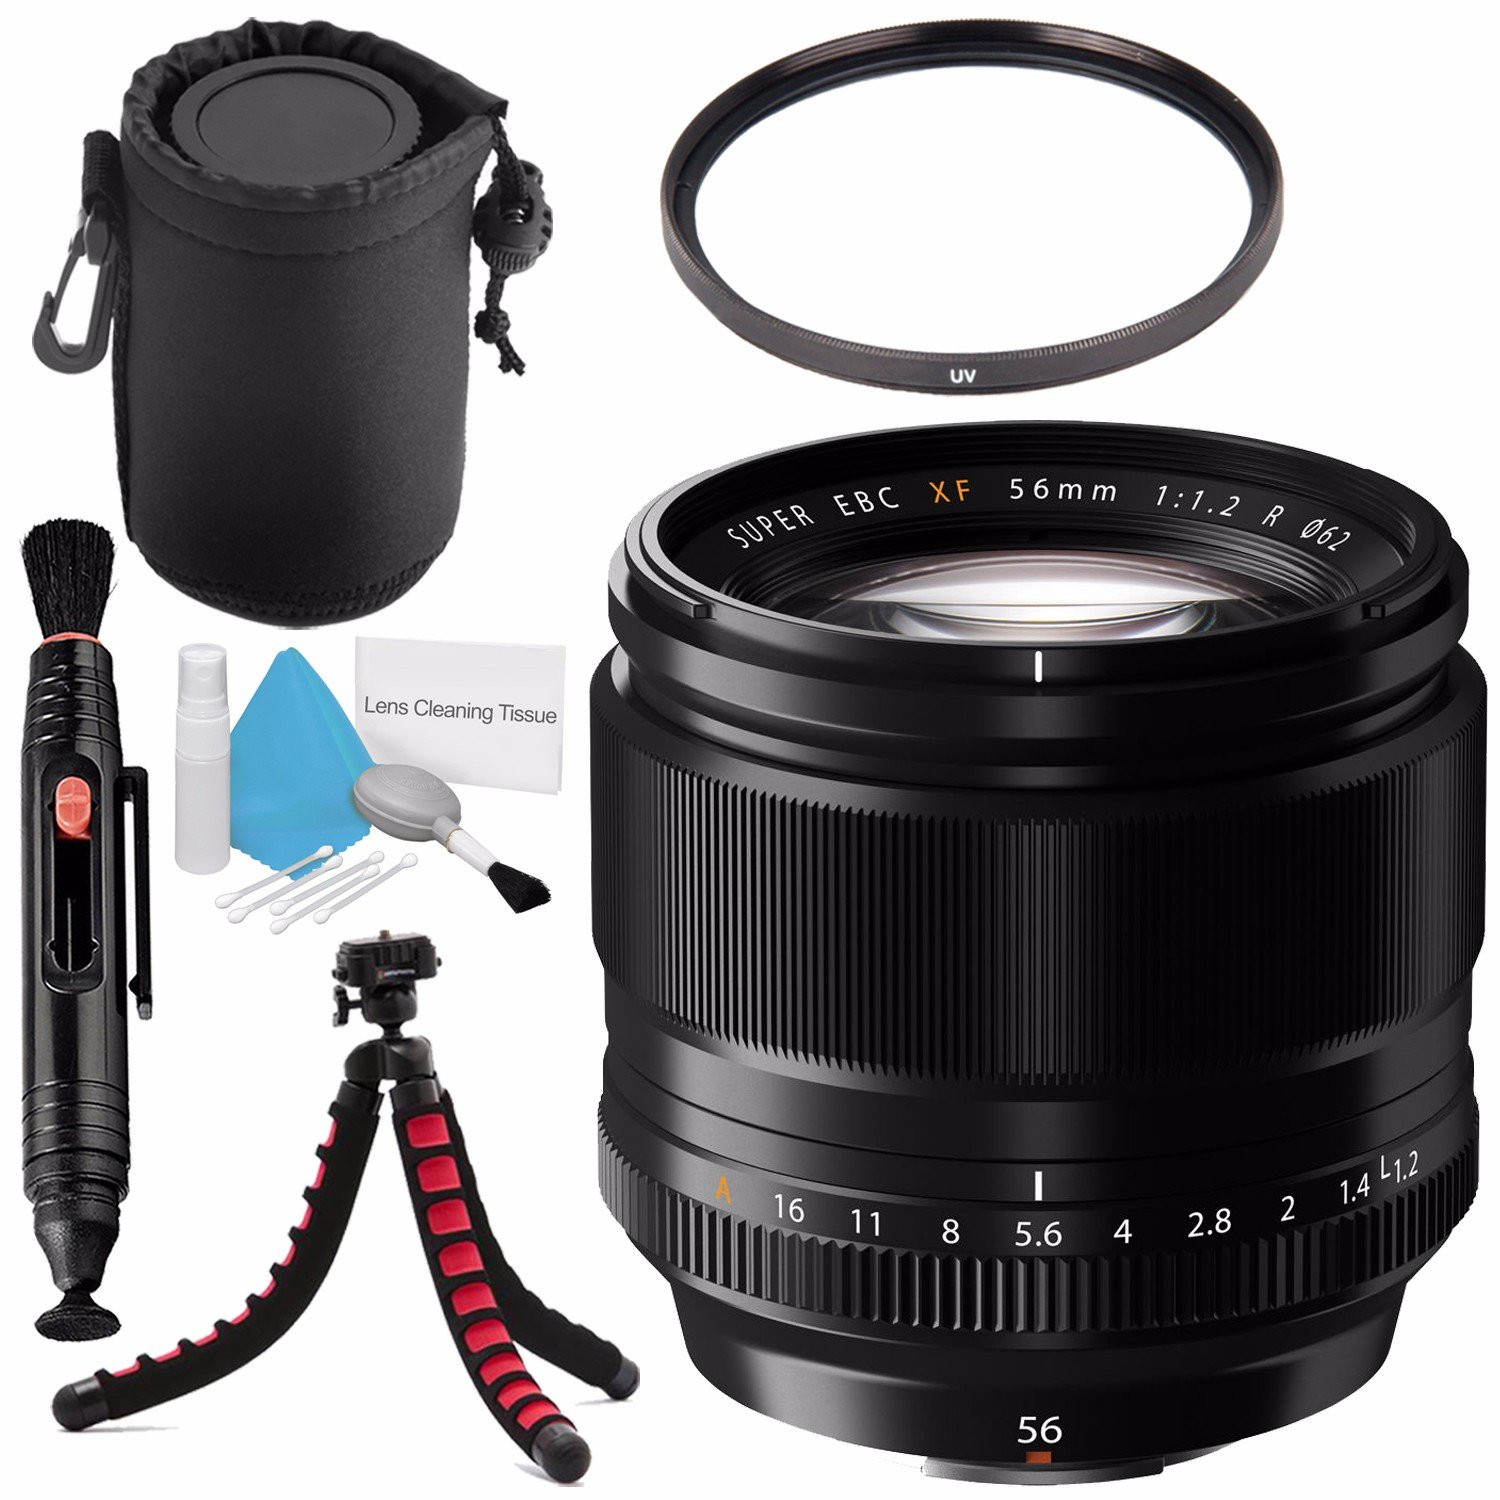 Fujifilm Xf 56mm F 12 R Lens 16418649 62mm Uv Filter Fujinon Xf56mm Apd Deluxe Cleaning Kit Pouch Pen Cleaner Flexible Tripod Bundle Camera